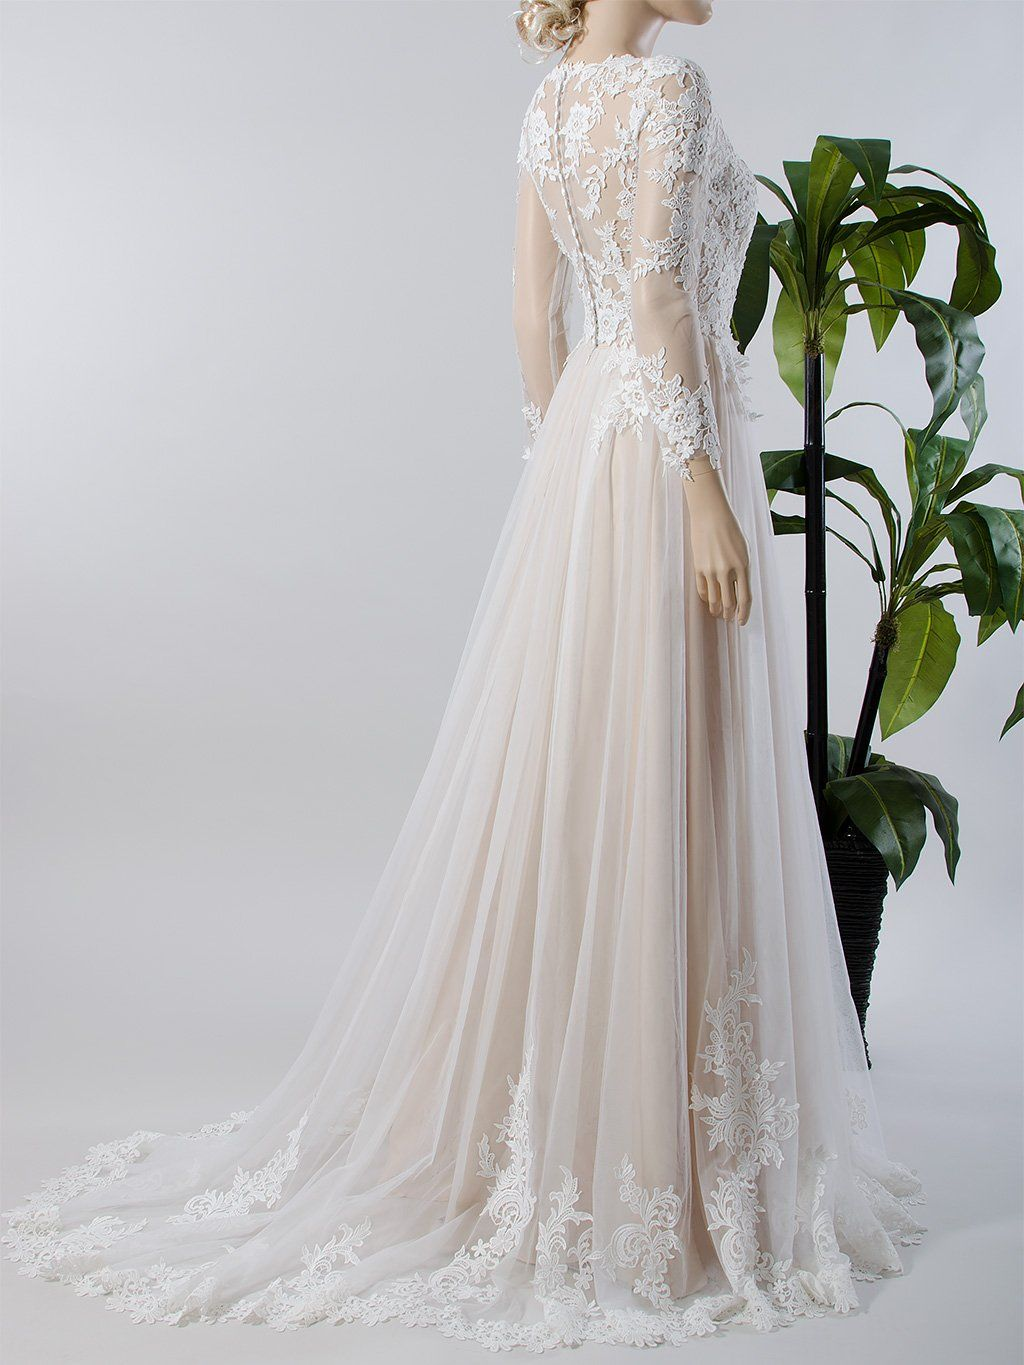 Long Sleeve Lace Wedding Dress With Tulle Skirt 4018 Lace Wedding